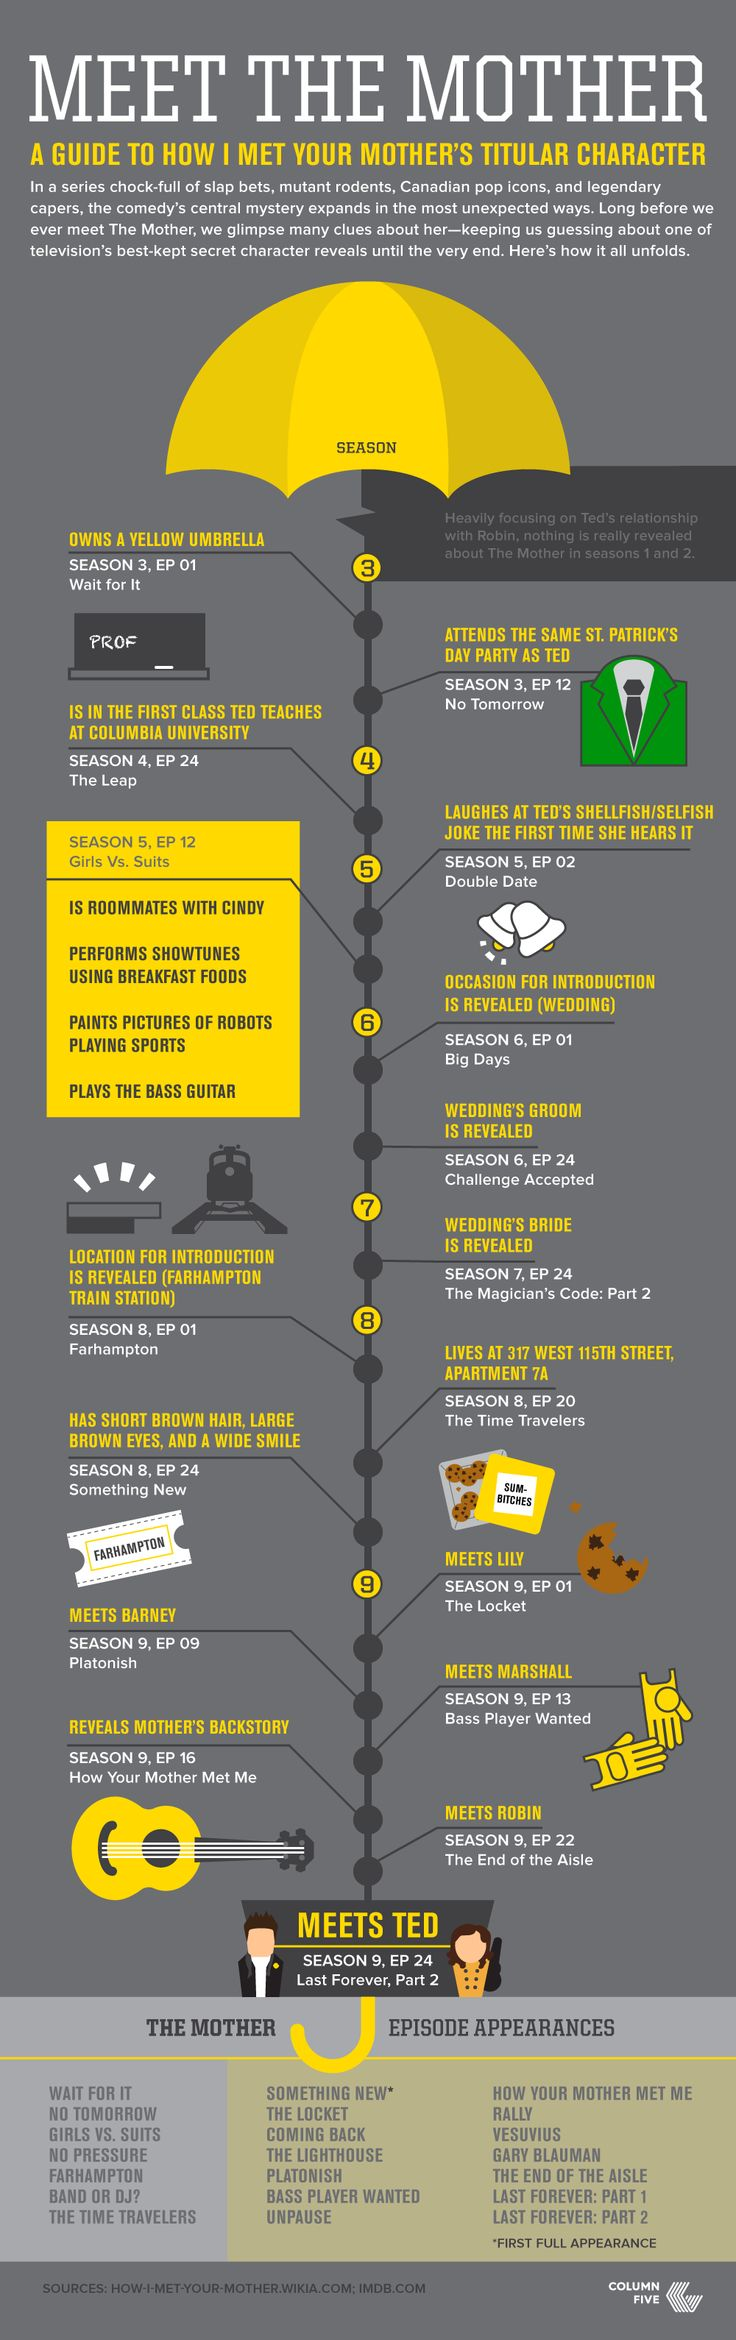 How I Met Your Mother [Infographic]